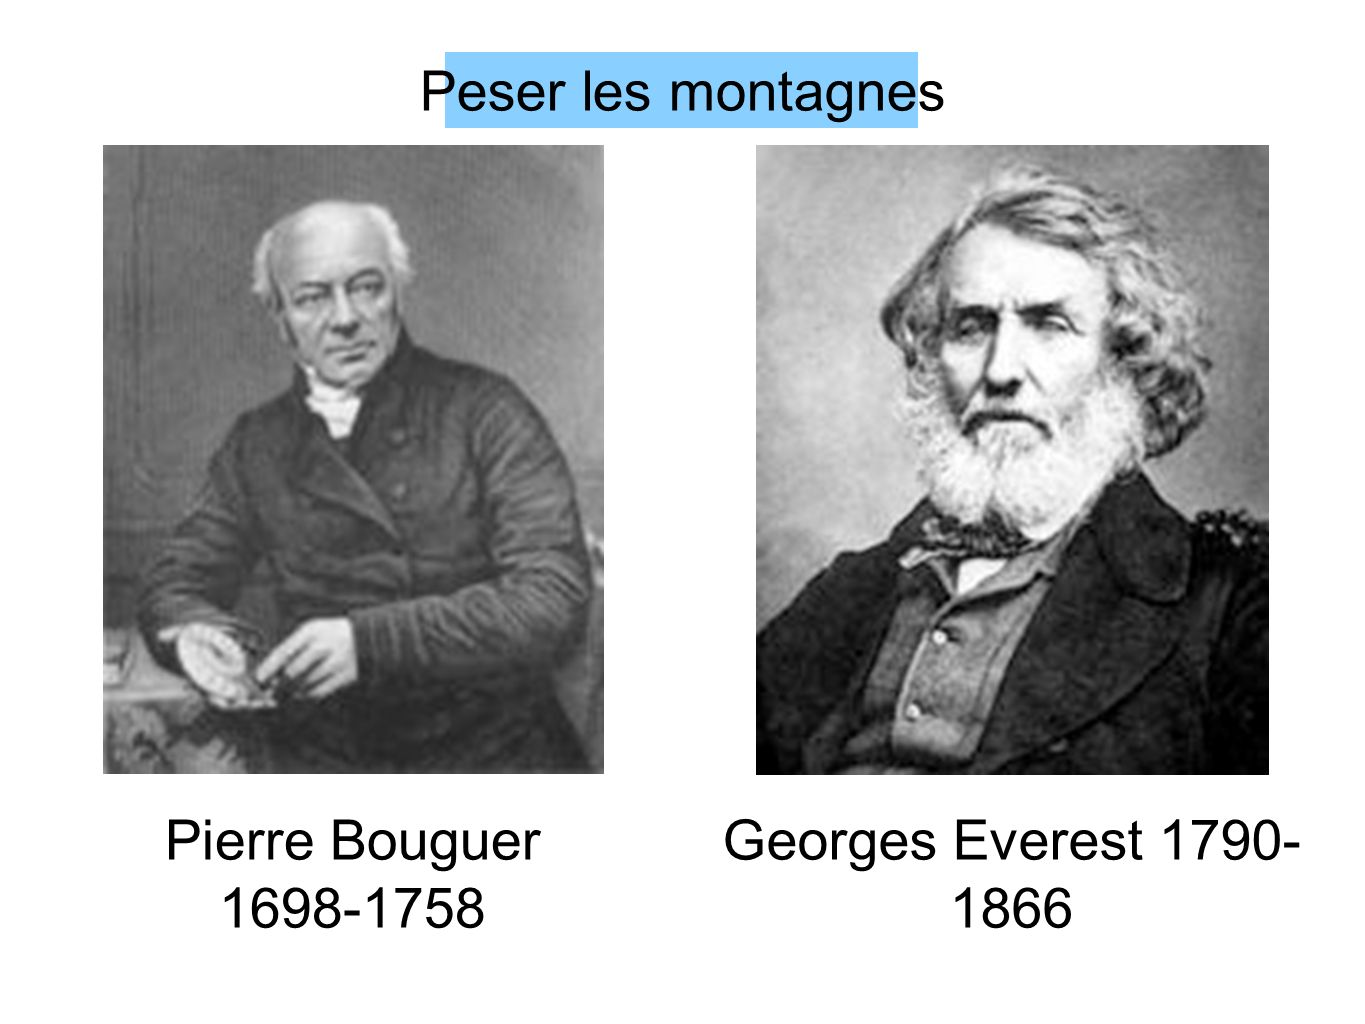 Pierre Bouguer 1698-1758 Georges Everest 1790- 1866 Peser les montagnes